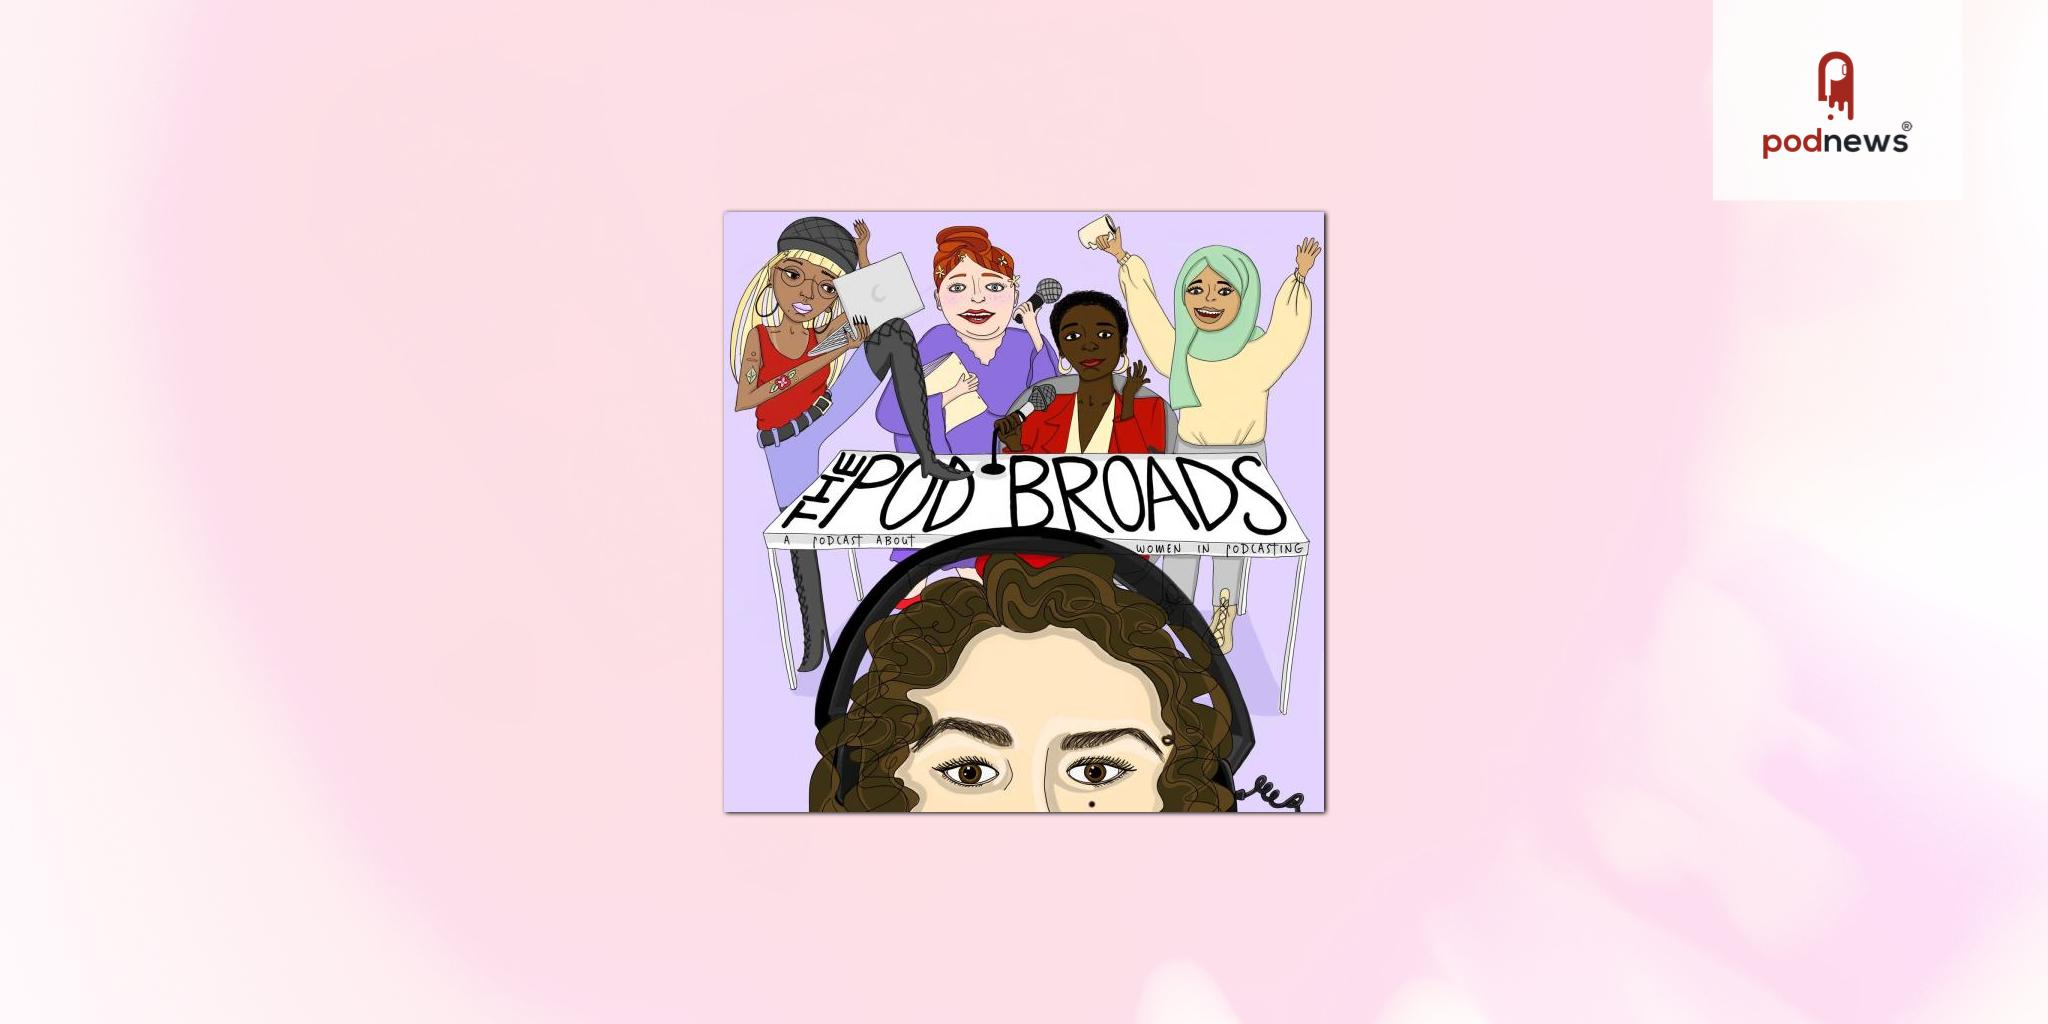 The Pod Broads launches second season with notable women podcasters